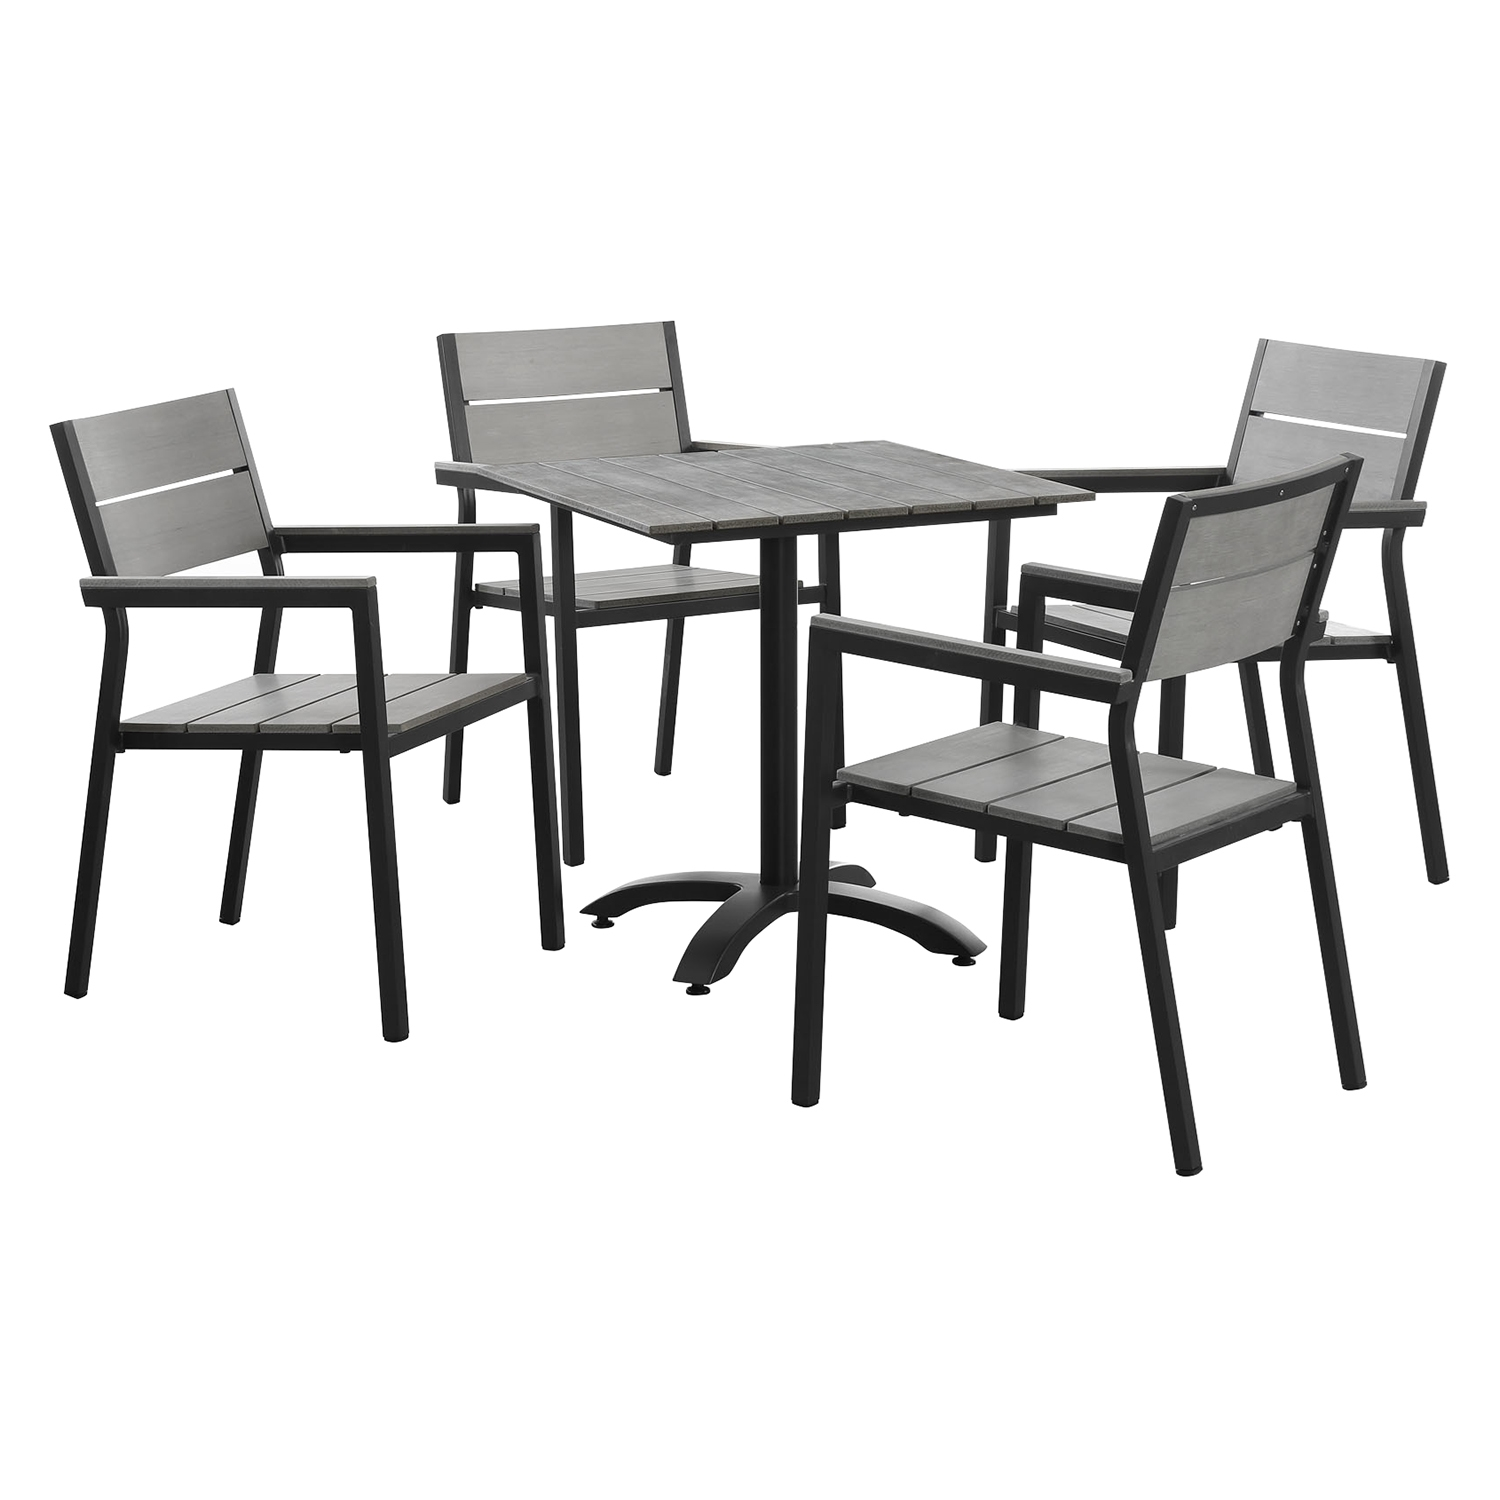 Maine 5 Pieces Outdoor Patio Set - Gray, Brown - EEI-1761-BRN-GRY-SET